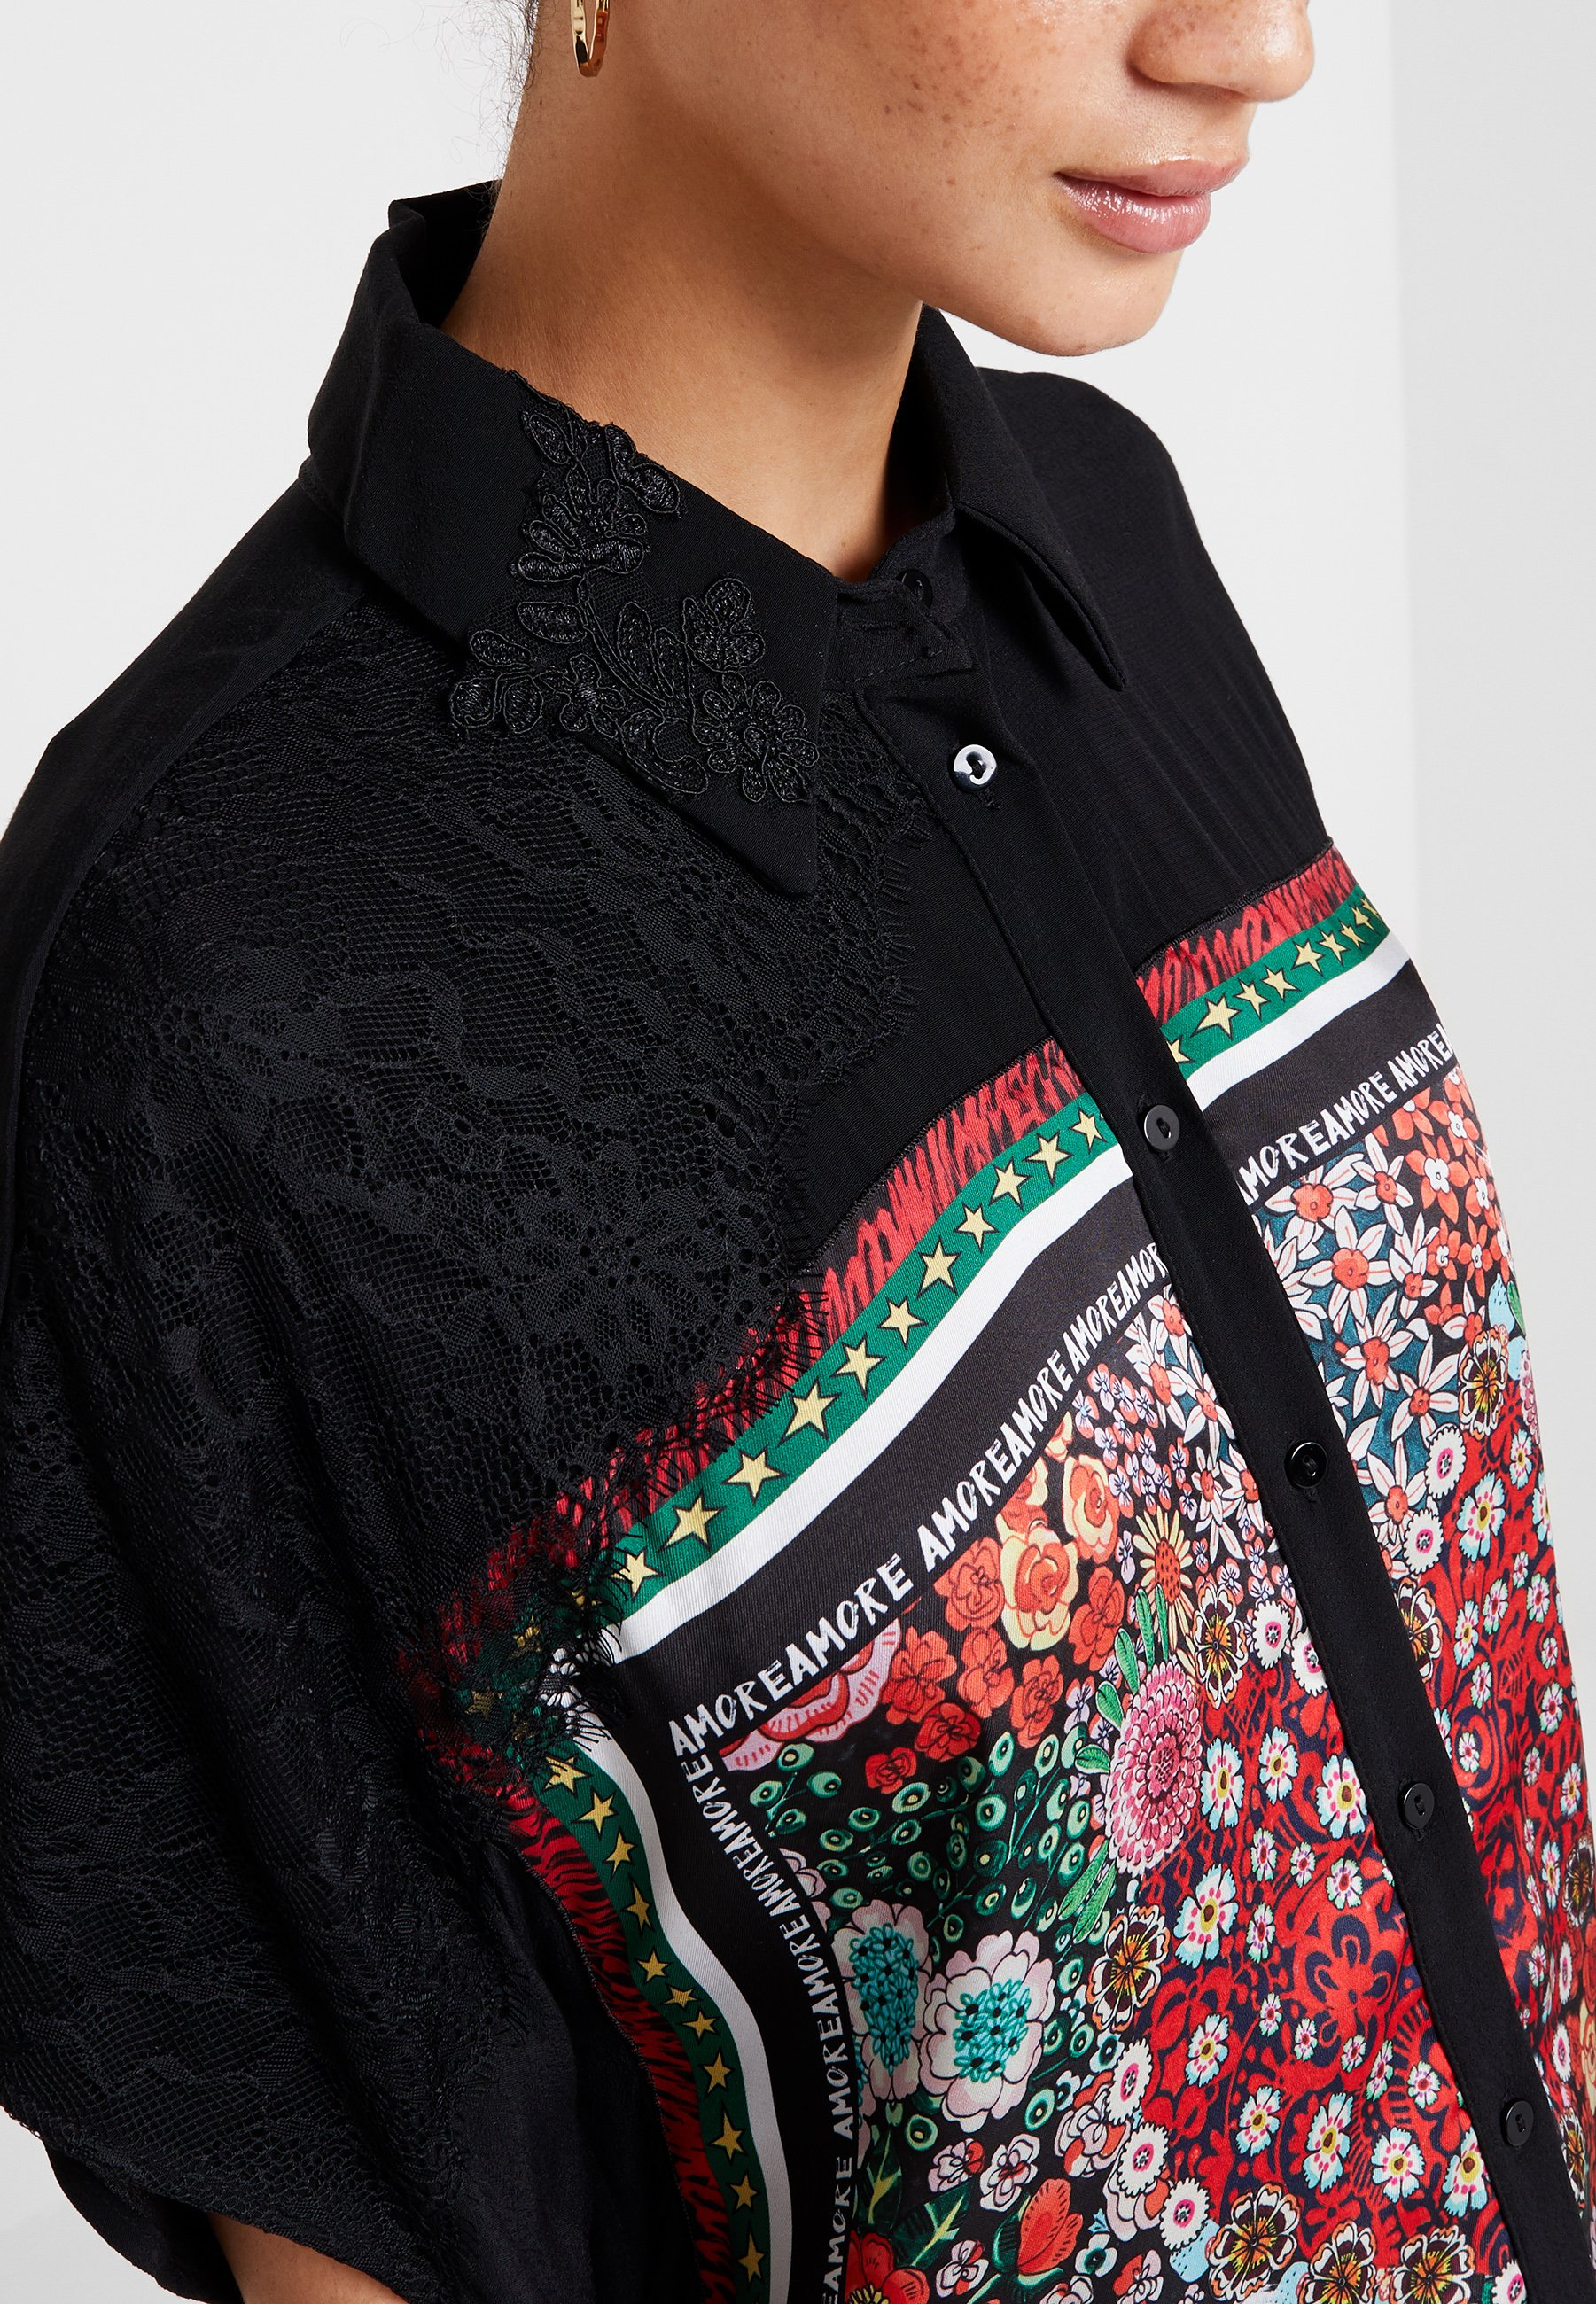 ChemisierBlack ChemisierBlack ChemisierBlack Desigual ChemisierBlack Desigual Desigual Desigual Desigual ChemisierBlack ChemisierBlack Desigual ChemisierBlack Desigual Desigual Desigual ChemisierBlack P80OXZNwkn